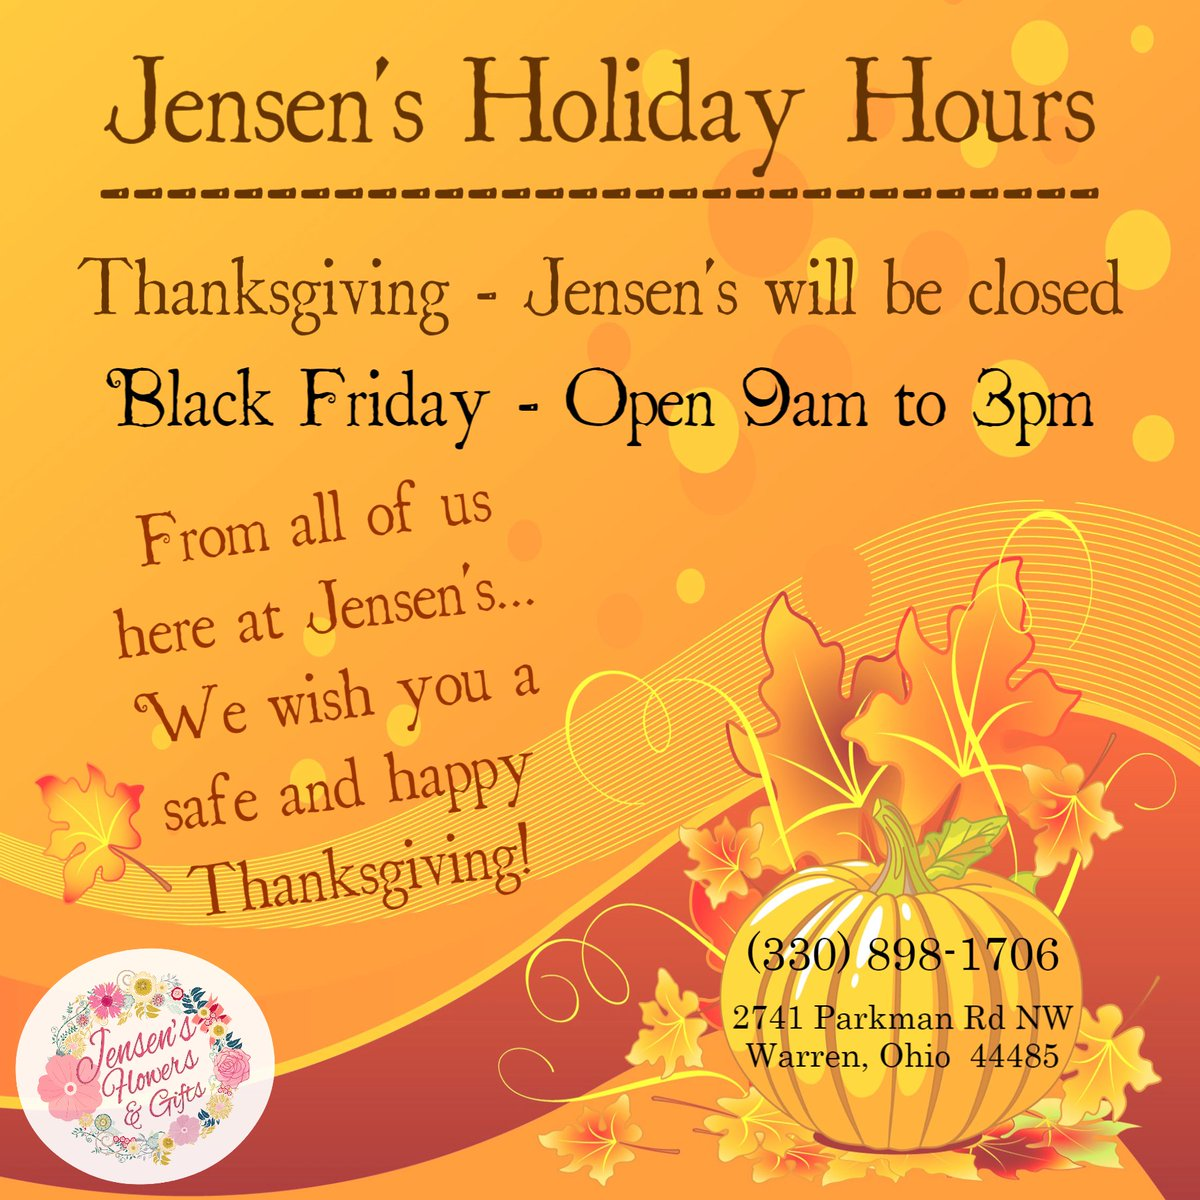 Jensen&#39;s Holiday hours  #jensensflowersandgifts #shoplocal #fall #autumn #autumnlight #autumnleaves #autumnday #thanksgiving #holidays #centerpiece #decorations #dsfloral #flower #flowers #handcrafted #floralarrangement #florist #flowershop #eventflowers #freshflowers<br>http://pic.twitter.com/mX5hqI84B2